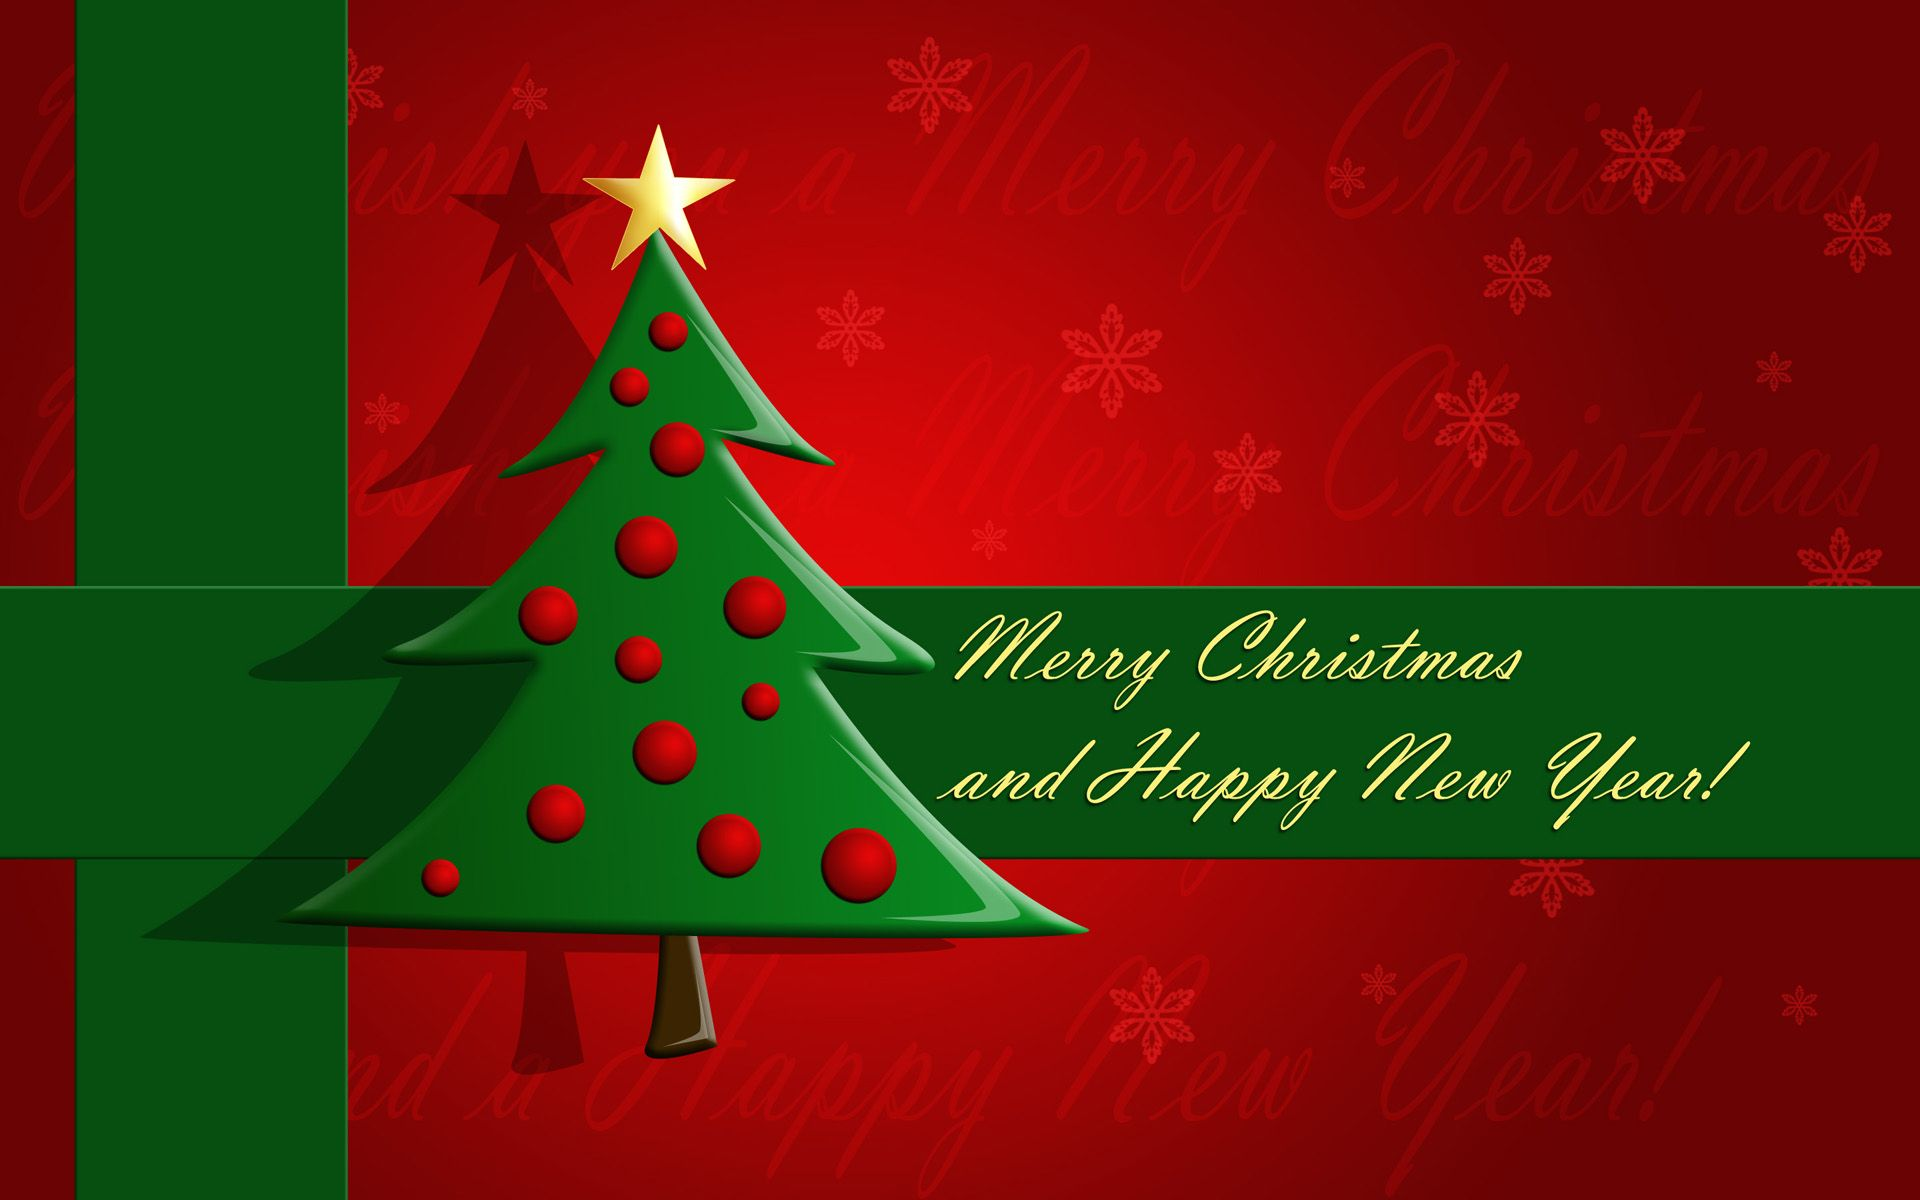 merry christmas 2014 and happy new year 2015 | merry christmas